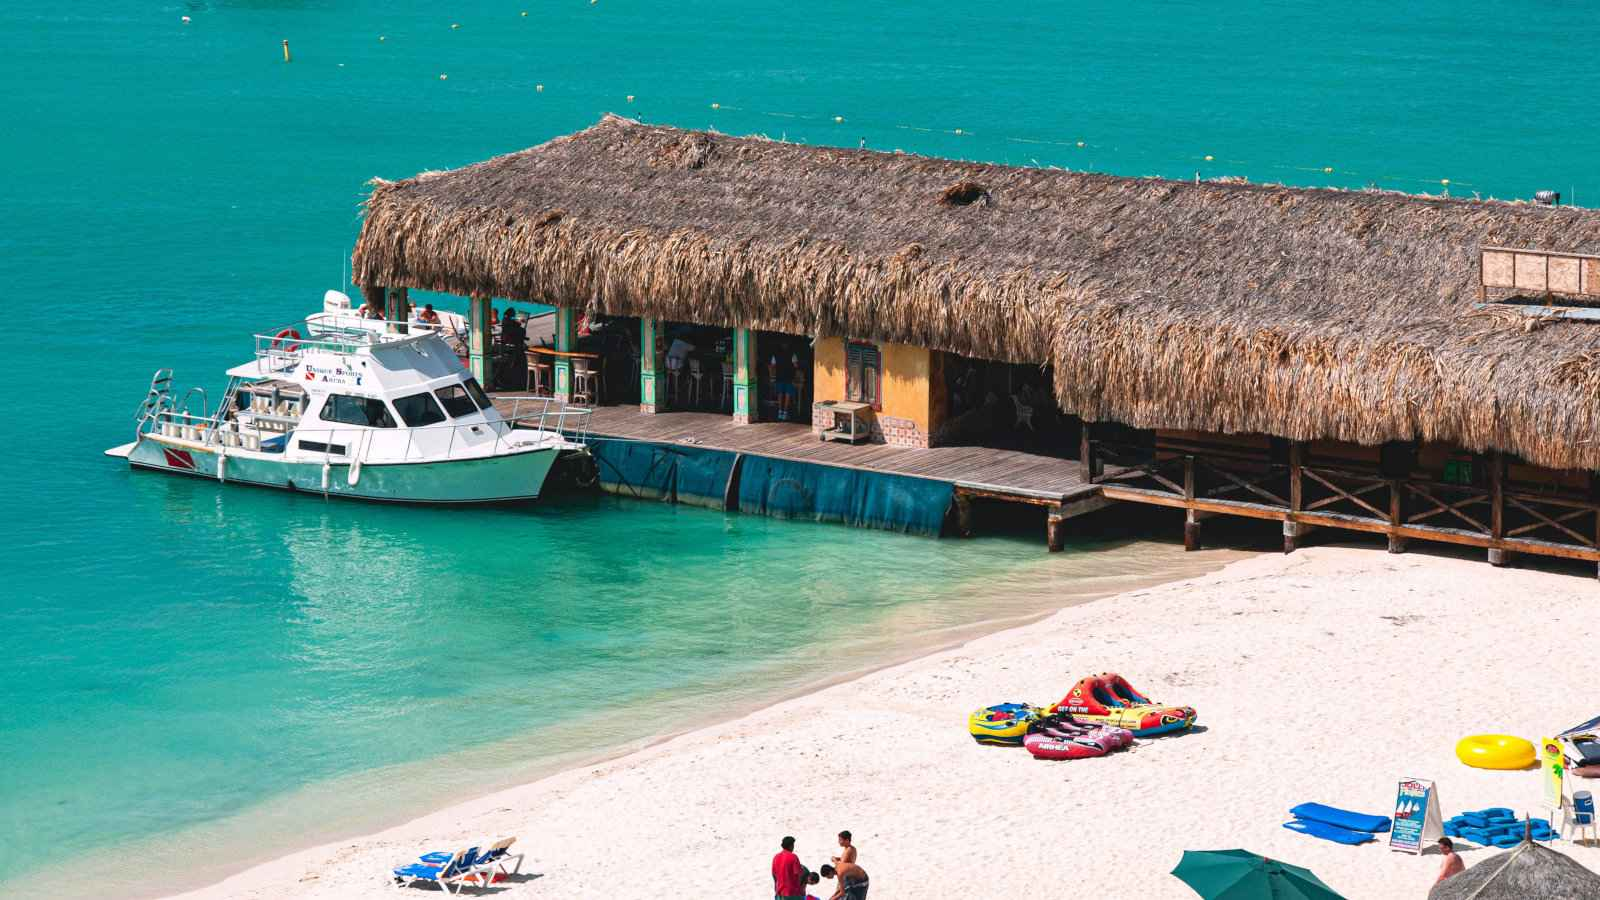 Aruba is a gay friendly and stunning tropical island in the Caribbean